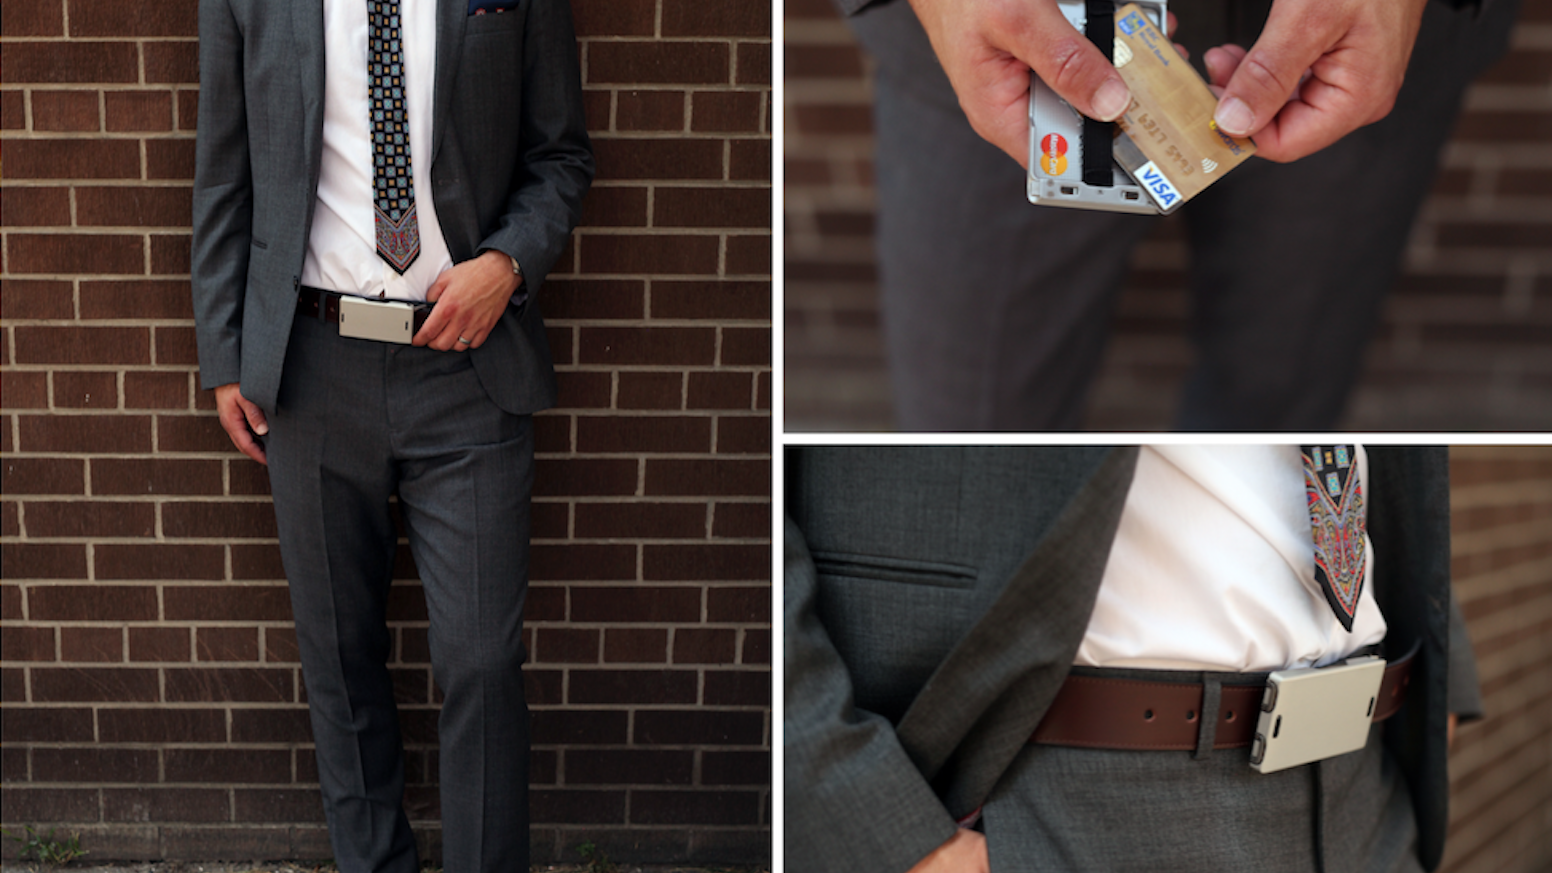 A comfortable and sleek wallet that attaches to your belt. An innovative latching buckle. End bulky wallets and bulging pockets.